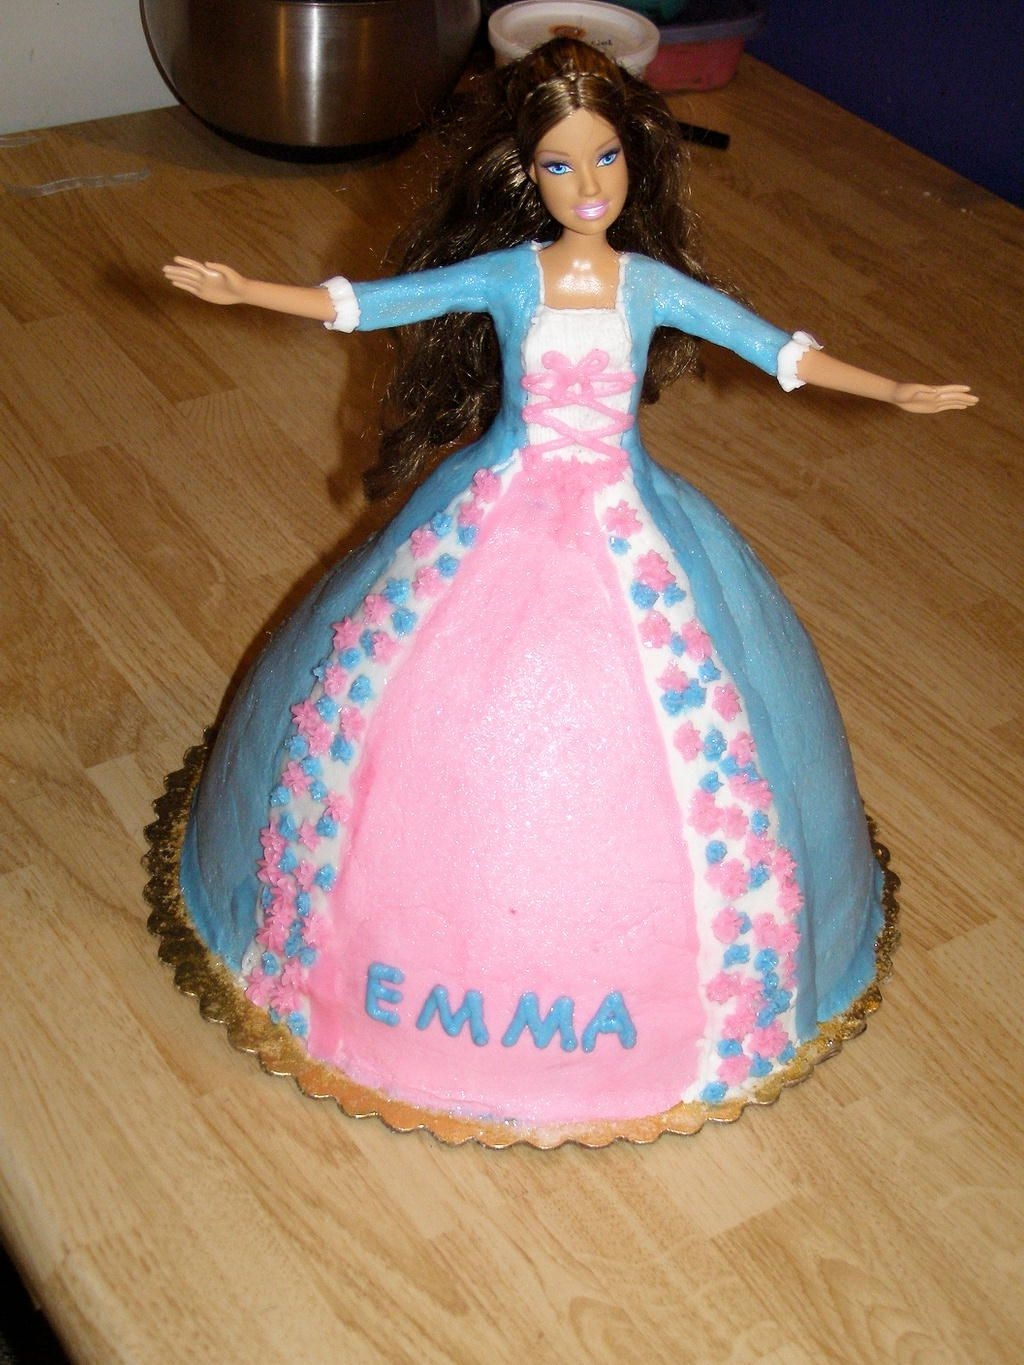 "Princess Erika Princess Erika was a request from a friend. I had never done a barbie cake before. She wanted two ""The princess and the pauper""..."